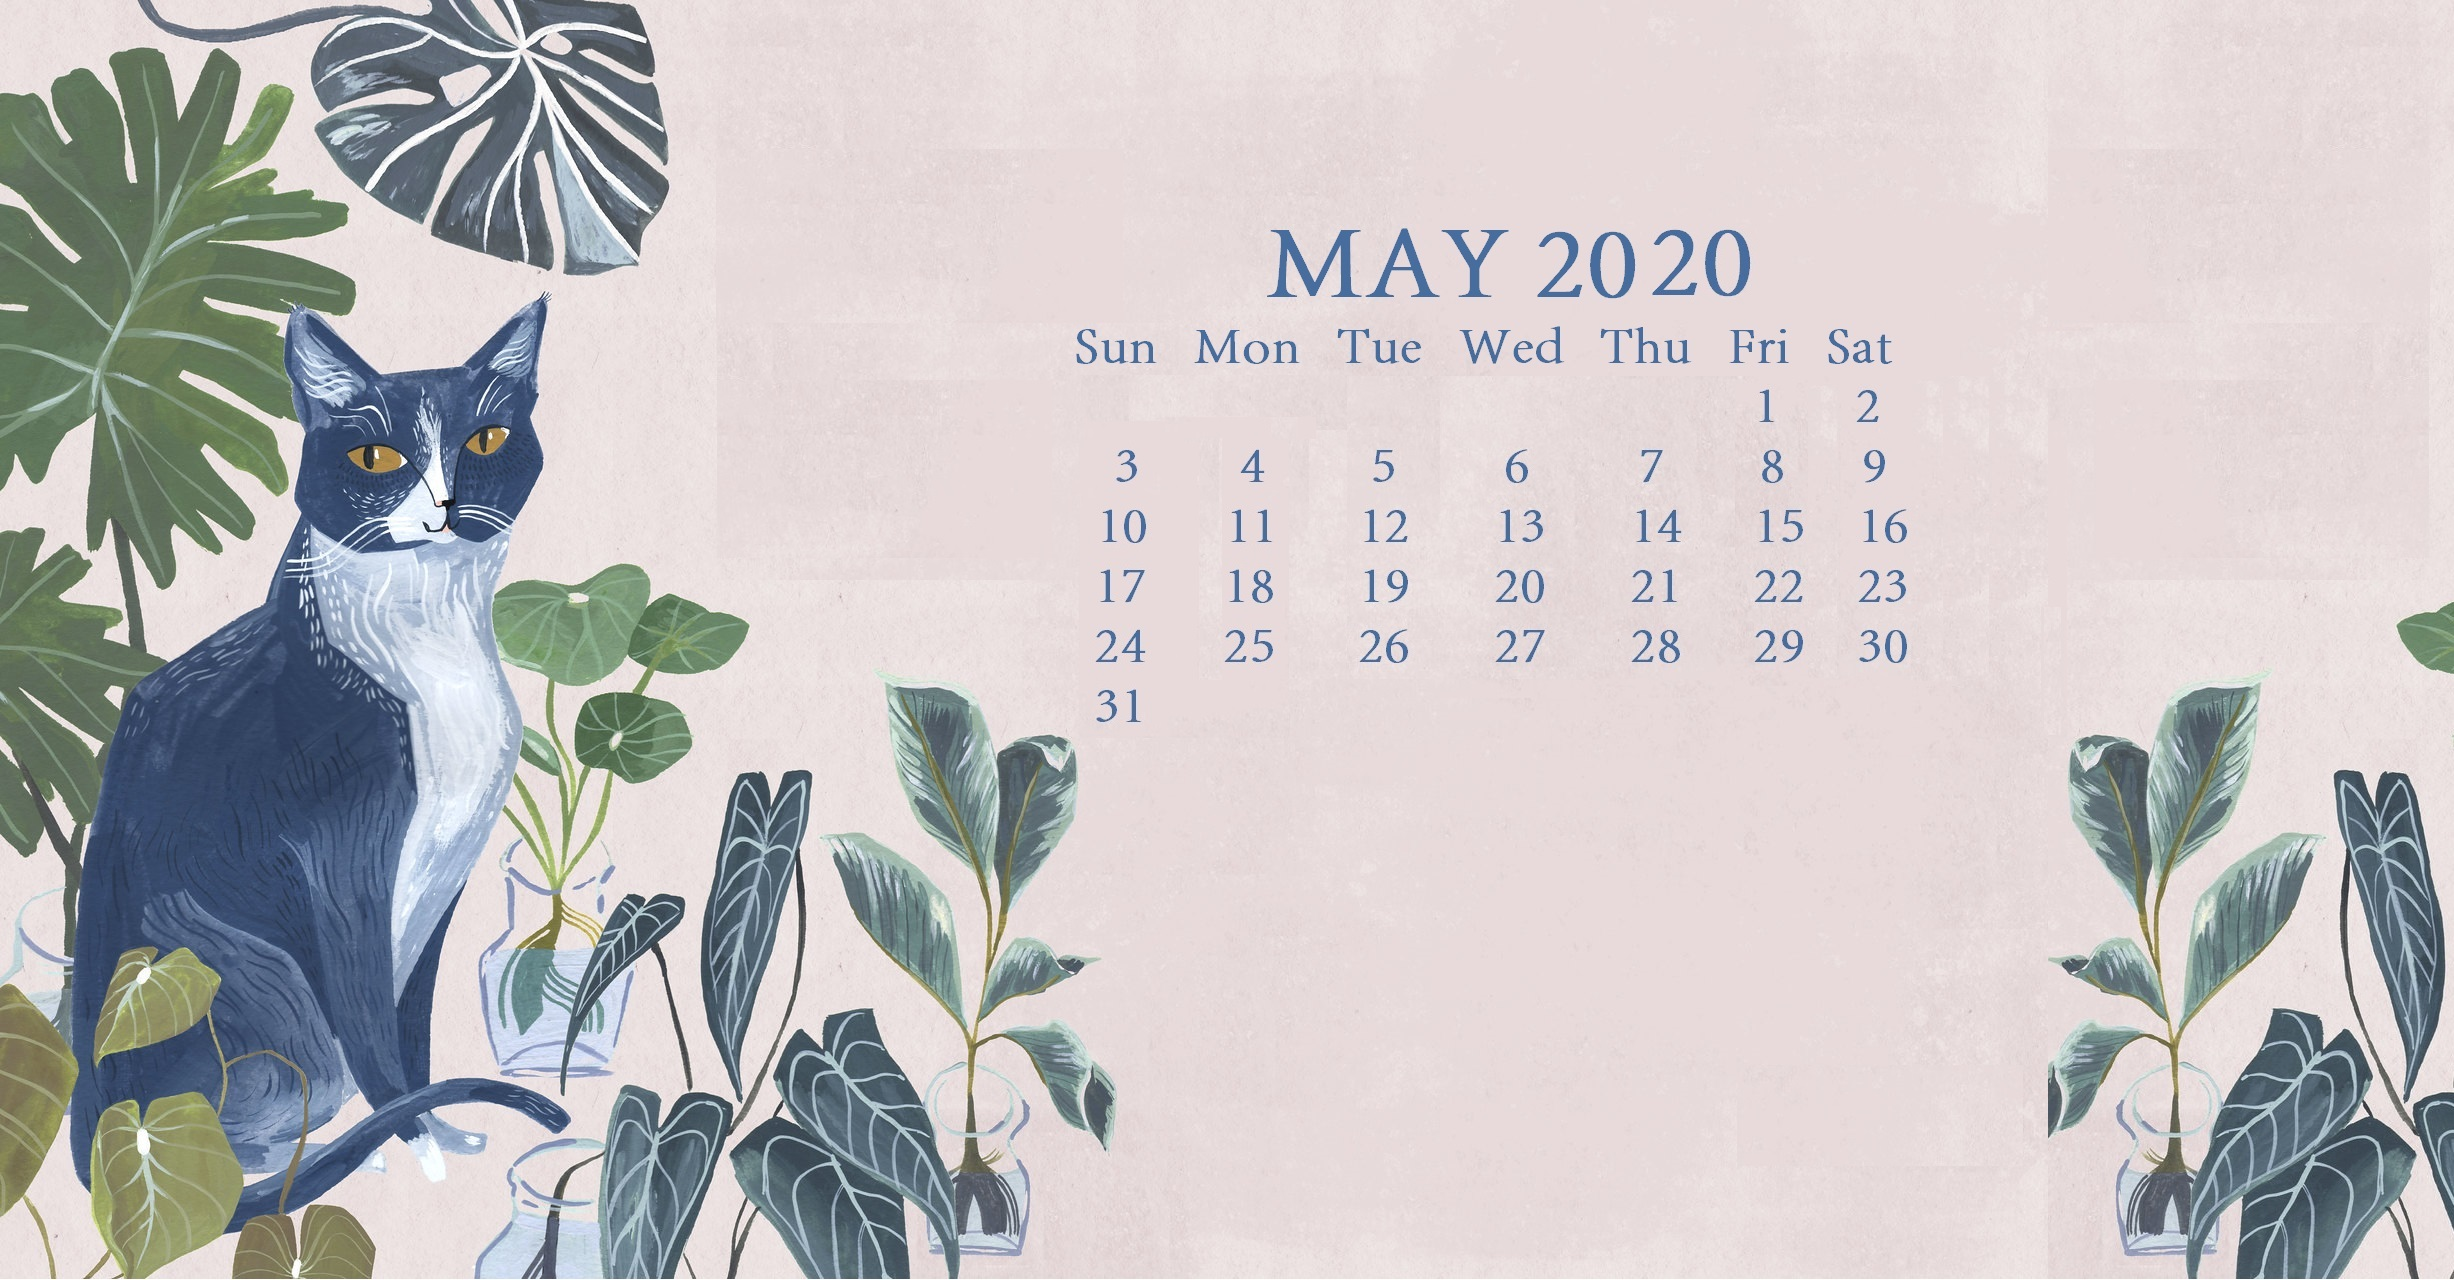 May 2020 Calendar Wallpaper